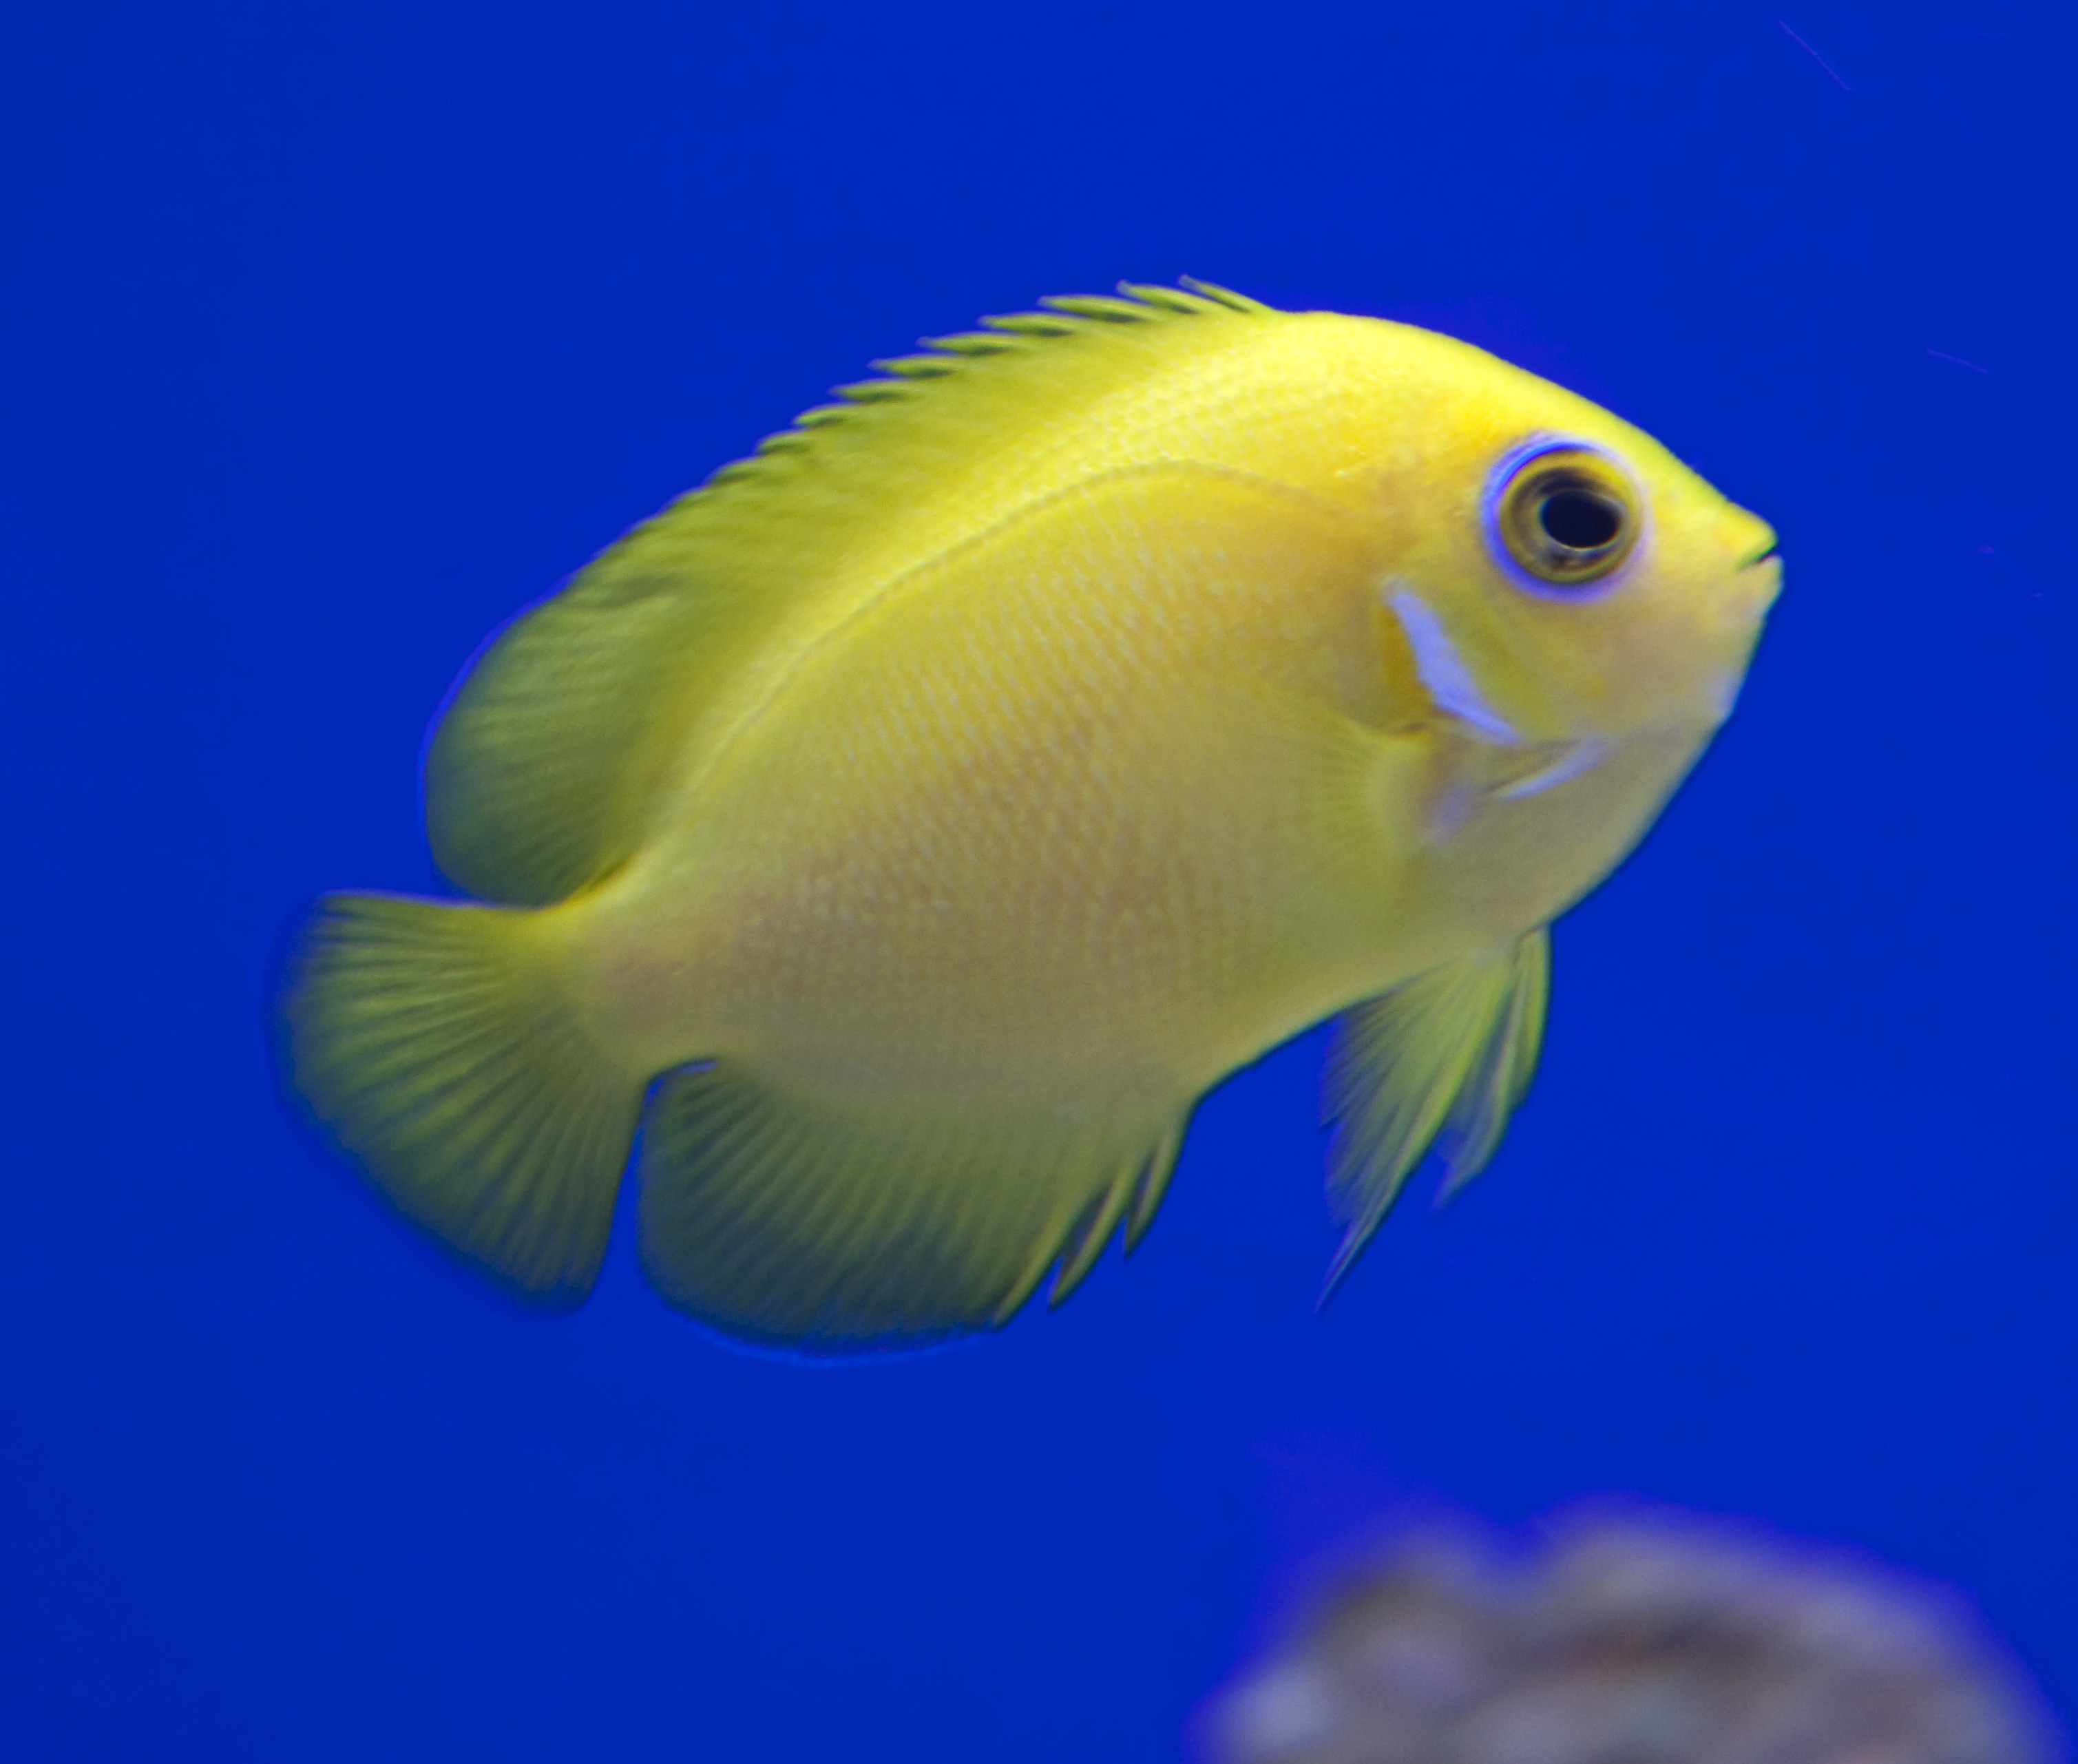 Types of tropical fish yellow pictures to pin on pinterest for Yellow tropical fish